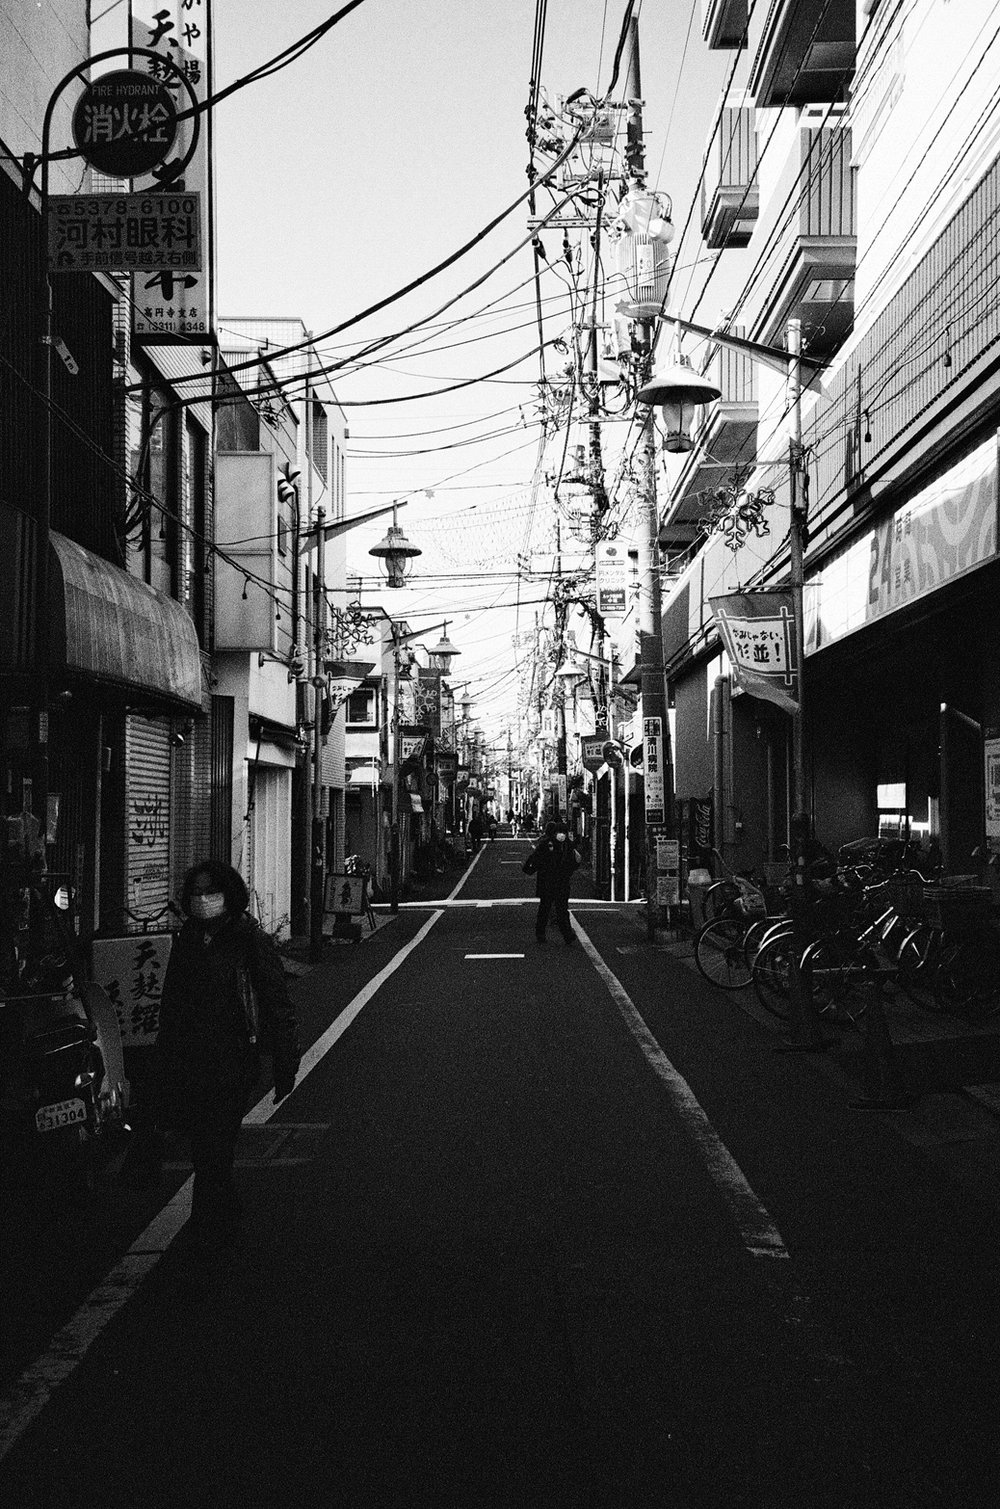 Tokyo, Japan in 35mm black & white film. Ryan Adams Prisoner Tour December 2016.